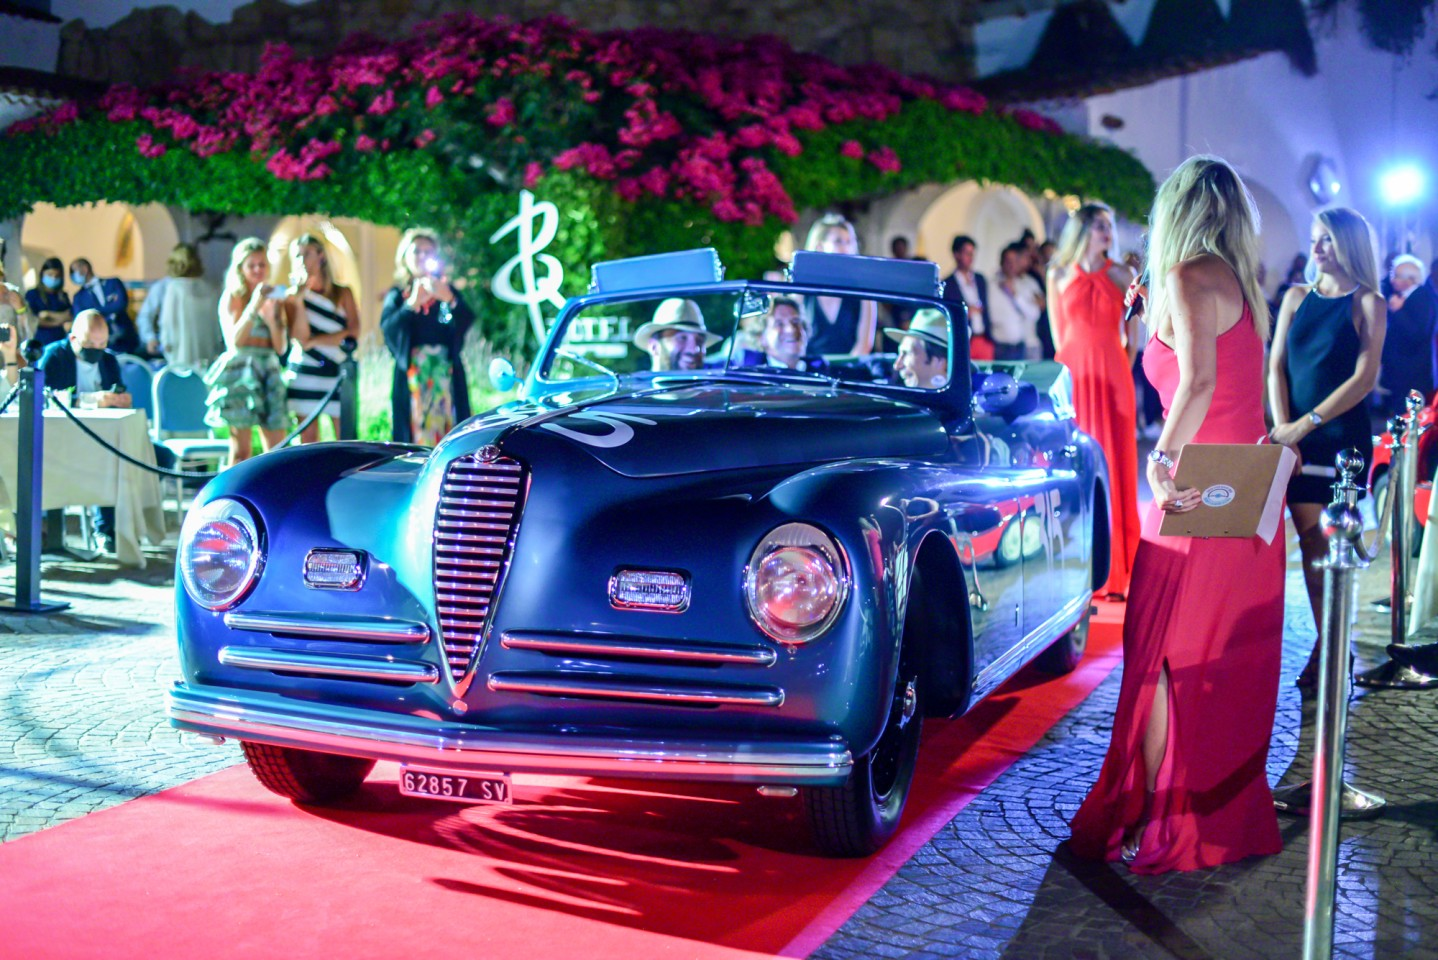 "The winner of the ""Cars from the Mille Miglia"" Class, the 1947 Alfa Romeo 6C 2500 Cabriolet Pininfarina of Mattia Colpani. This car competed in the 1949 Mille Miglia, and had there been an award for the most laughter and fun per mile in the tour, it would probably have won that too!"